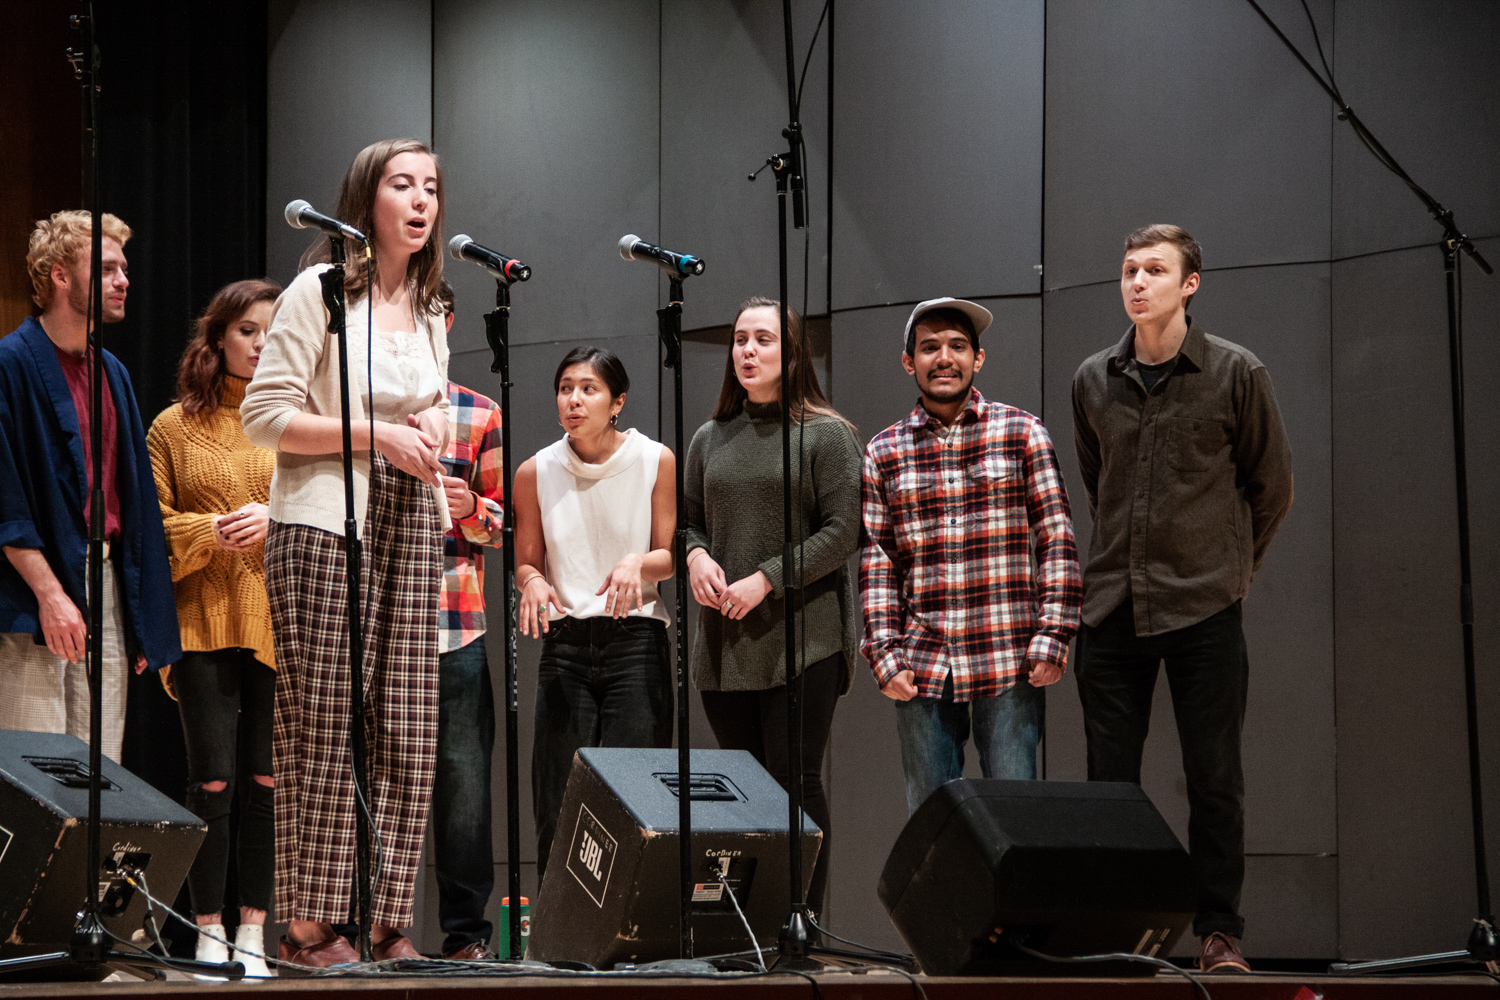 Whitman mixed-gender a cappella group Schwa was one of several groups performing at the Speakeasy Concert.